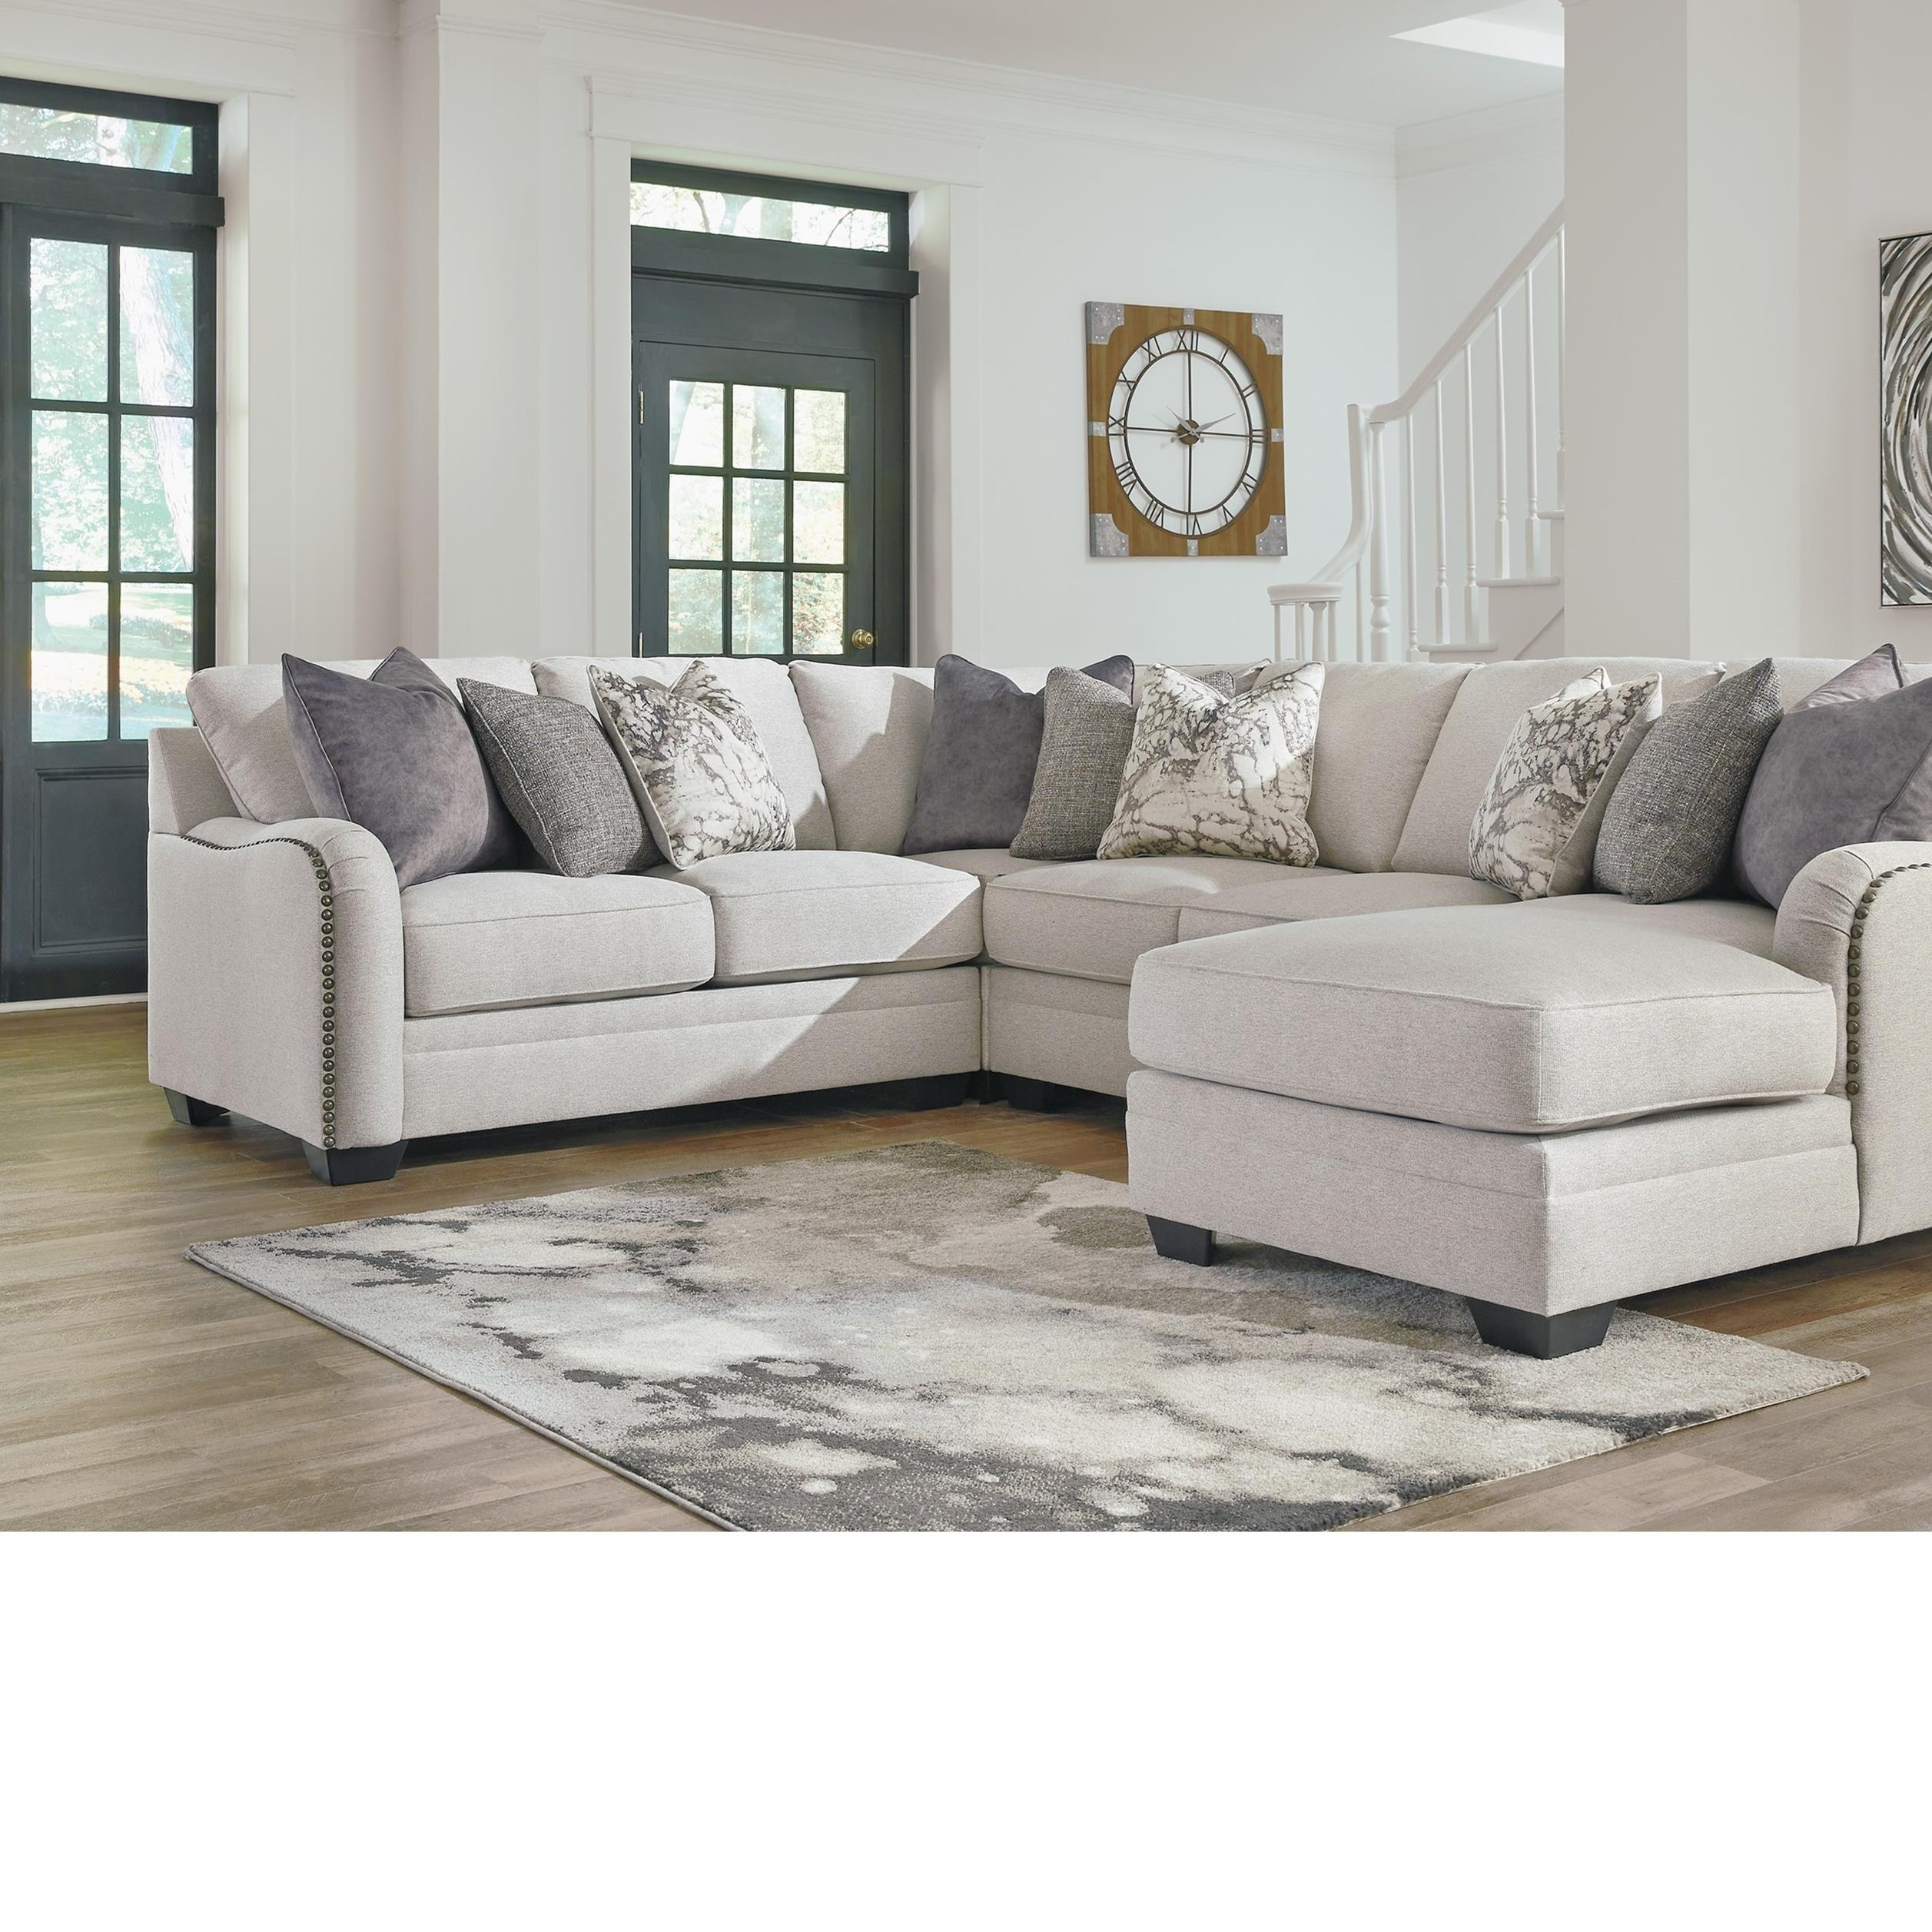 Dellara Casual 4-Piece Sectional With Right Chaise